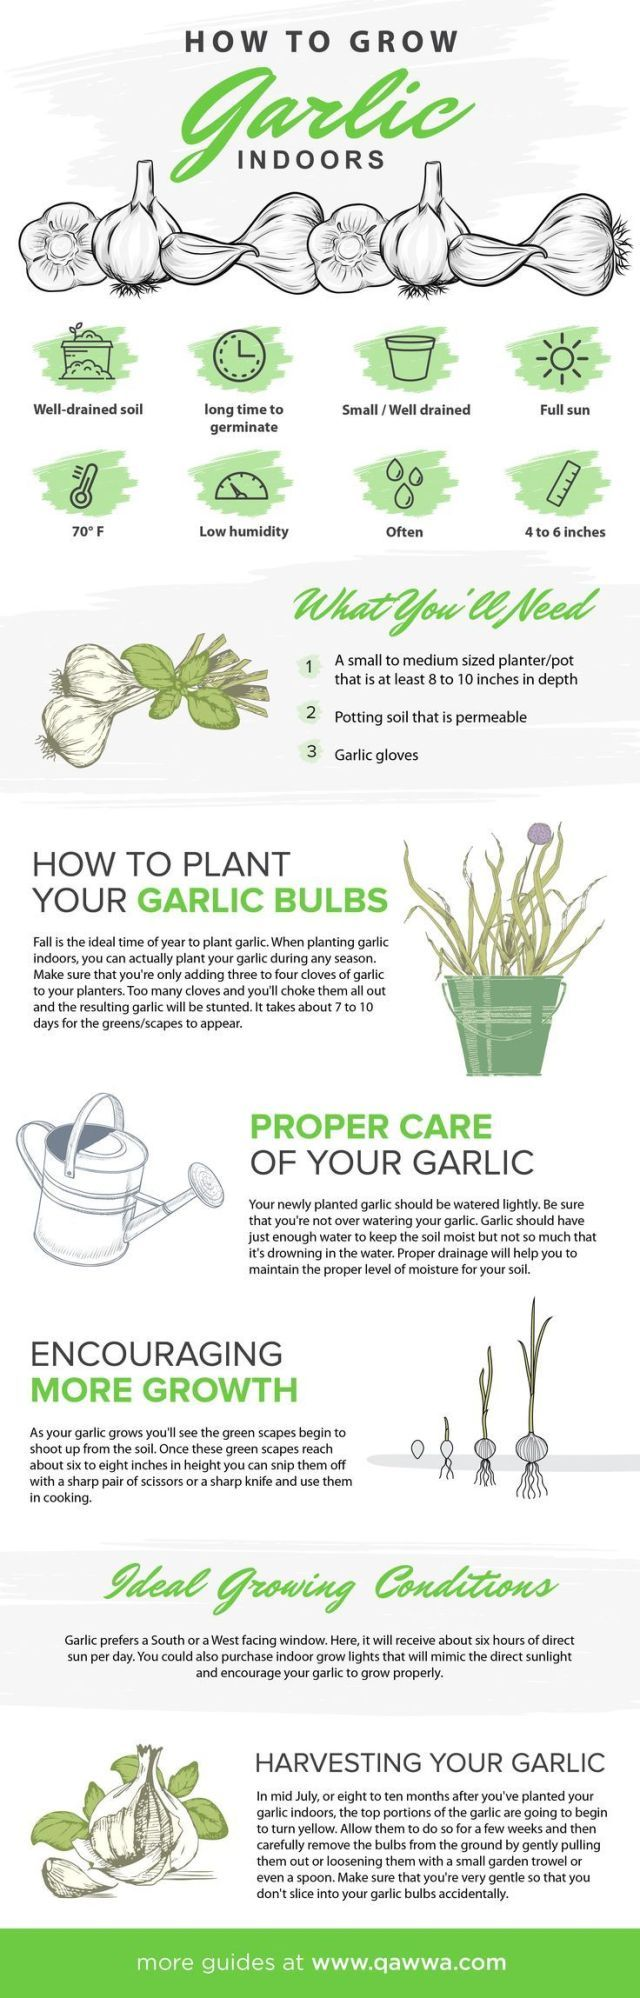 How to grow garlic indoors from seed to harvest  How to grow garlic indoors from seed to harvest